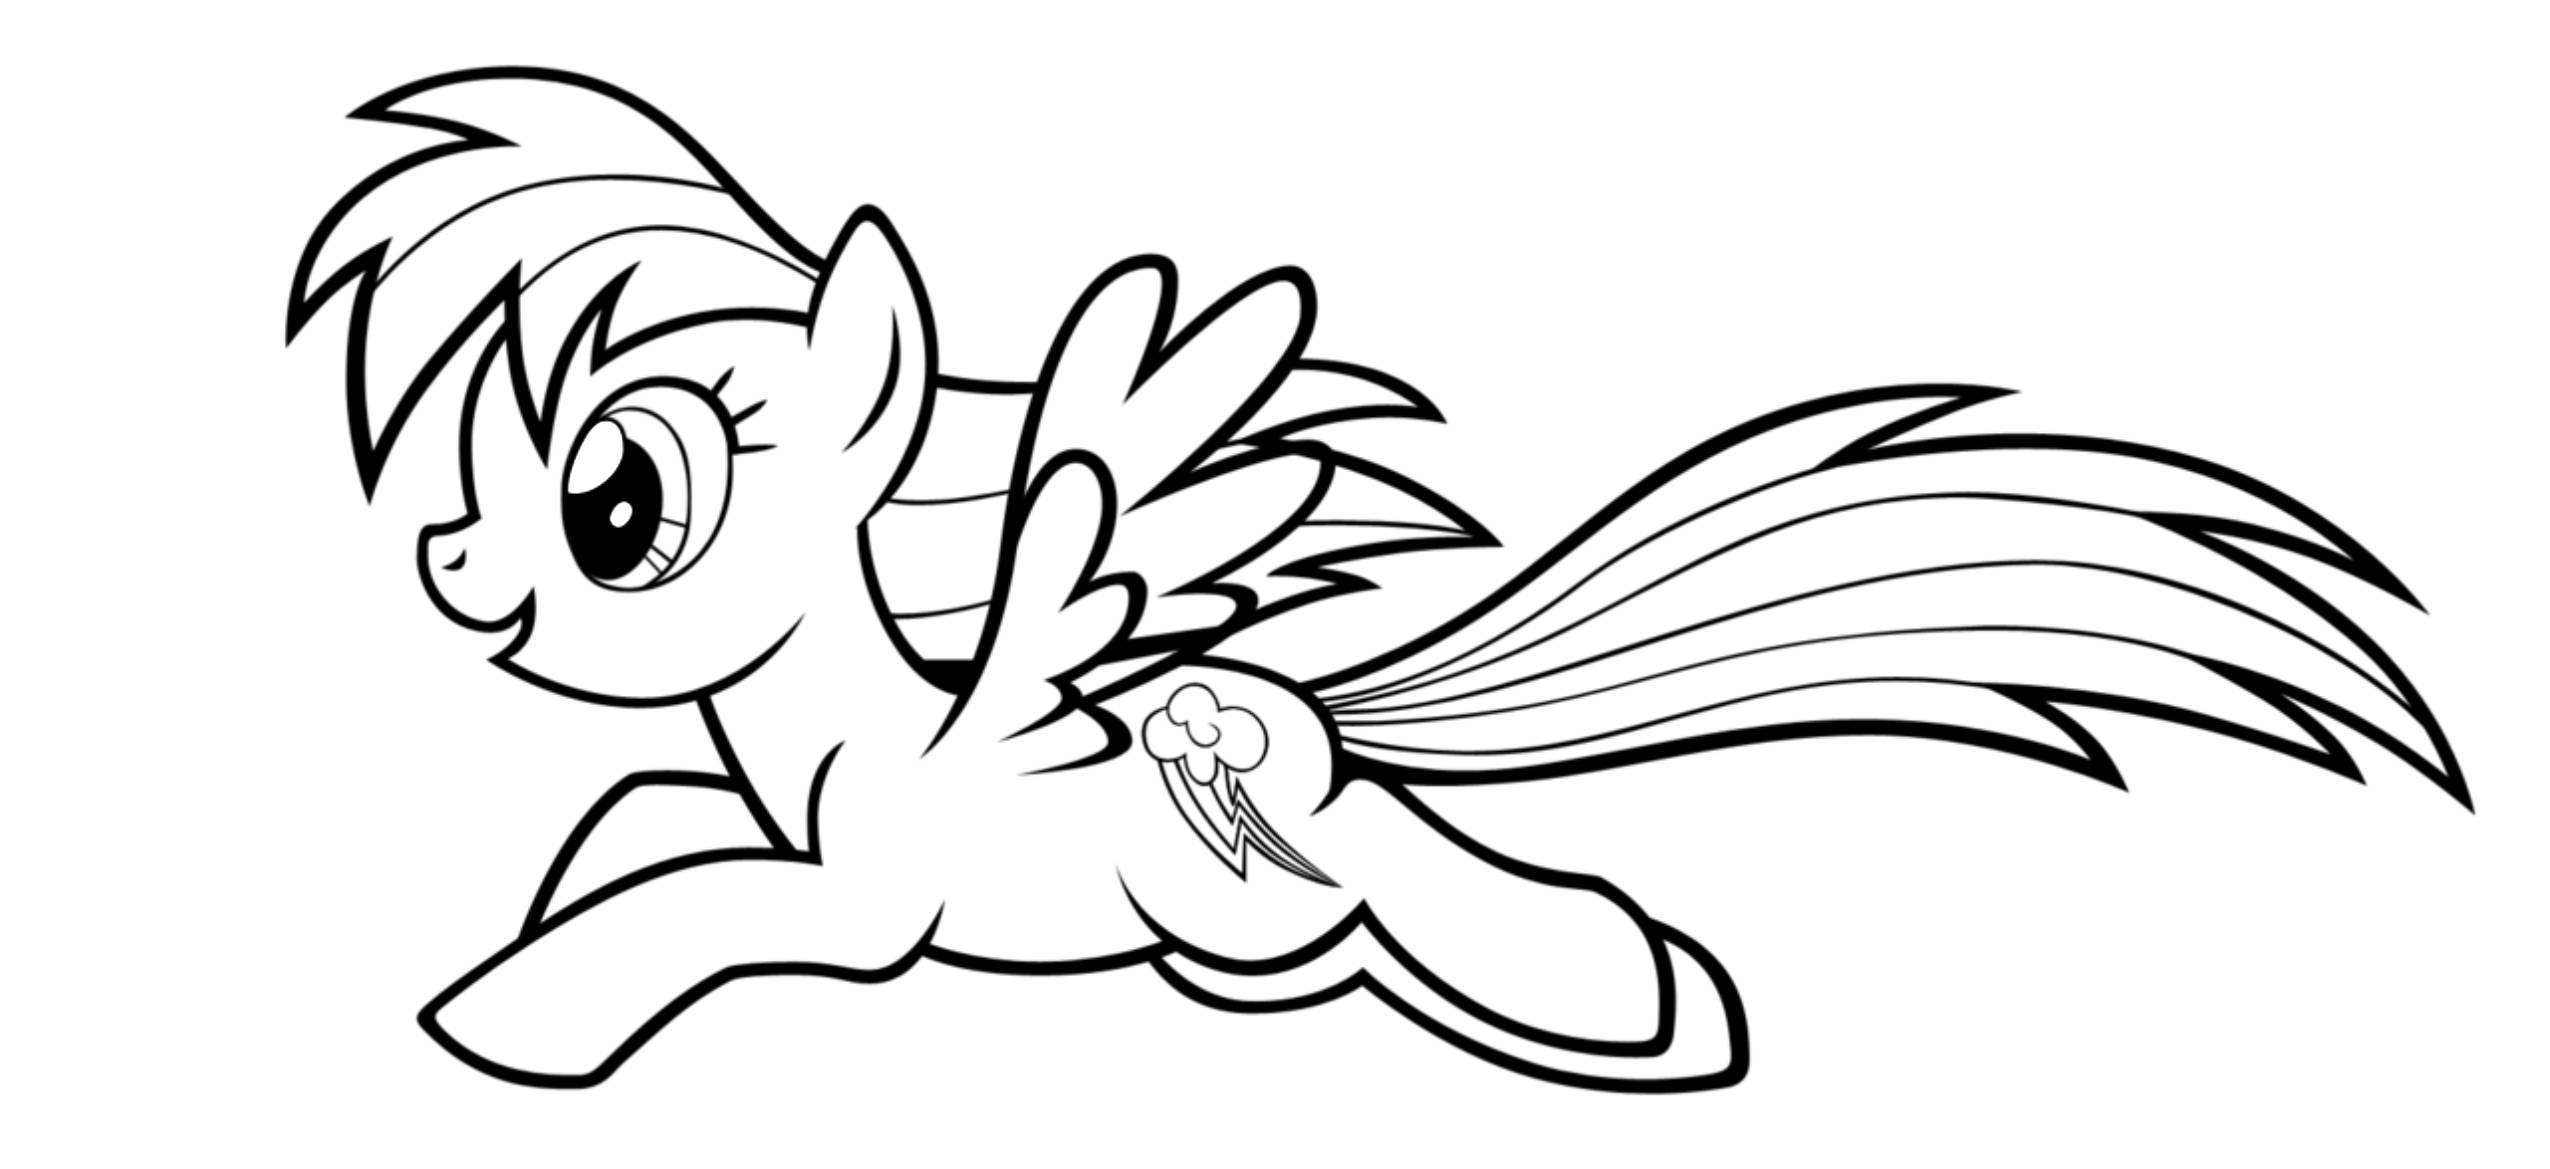 rainbow dash coloring pages free rainbow dash coloring pages best coloring pages for kids dash rainbow coloring pages free